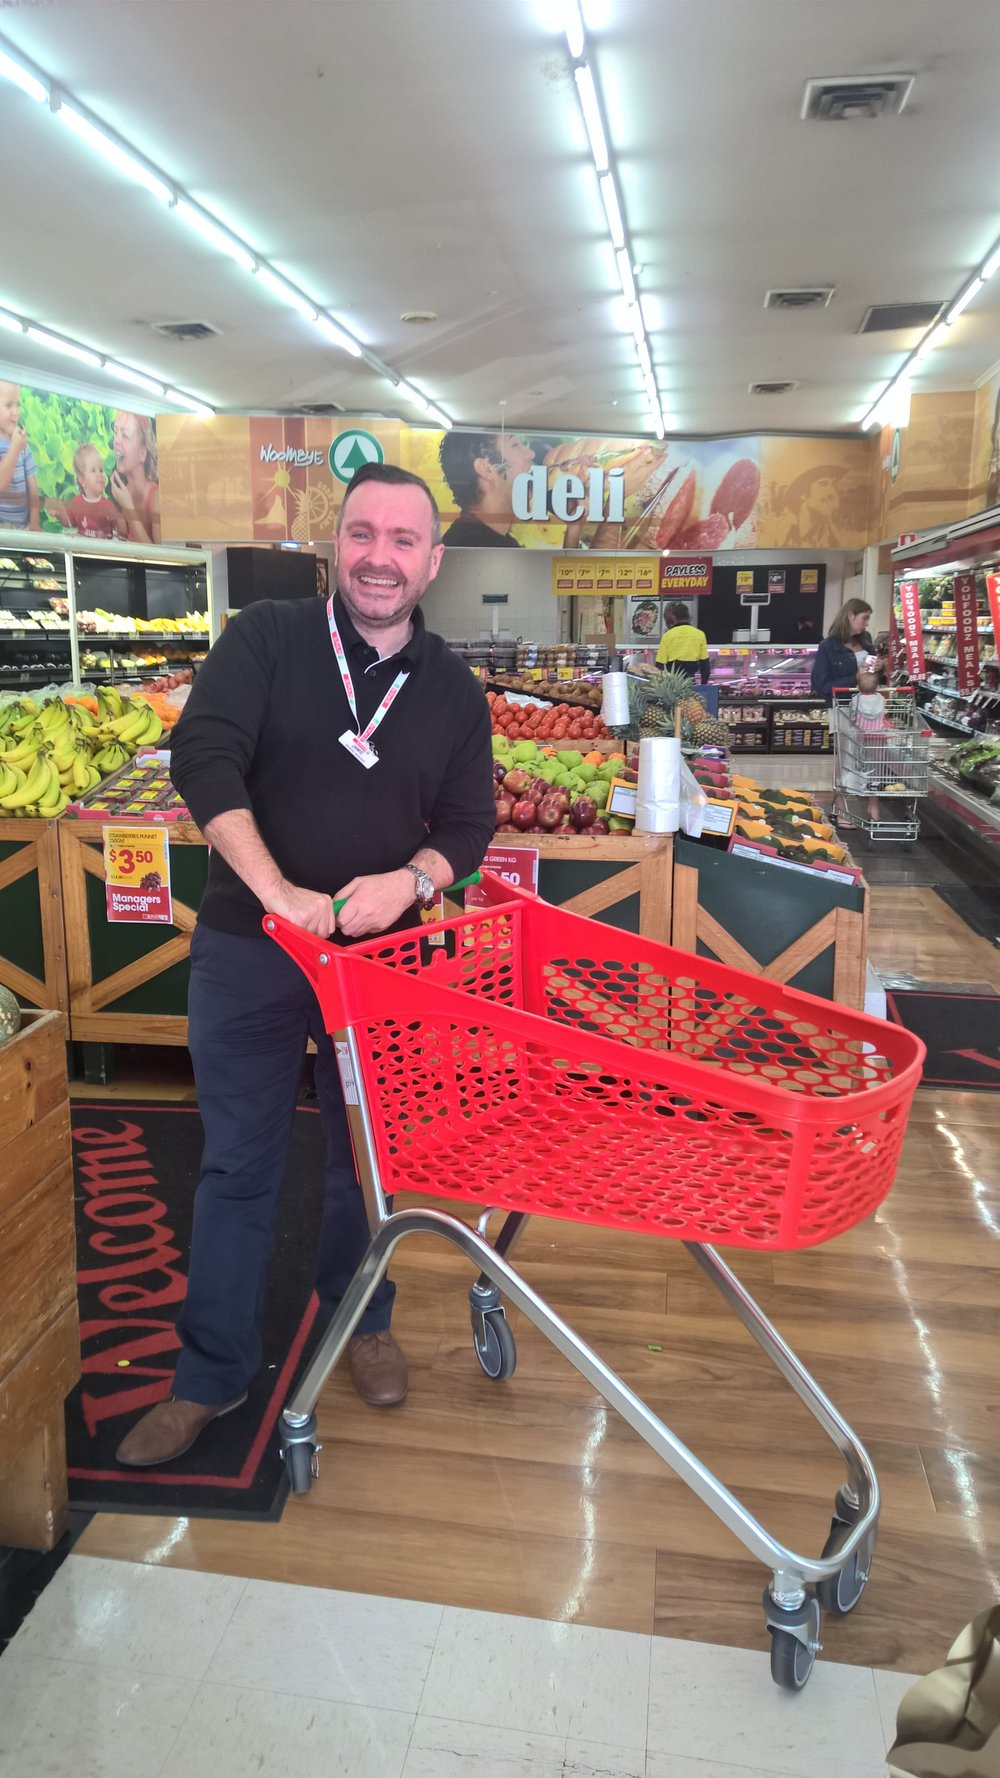 Seen here with our Mini-Hybrid shopping trolley is an elated Jamie - GM Corporate Stores & Online for SPAR Australia.  Head on down to meet Jamie, Kerrie and the team at SPAR Woombye, pick up some specials, essentials, quality produce and at the same time experience a truly unique shopping encounter using Supercart's branded shopping trolleys.